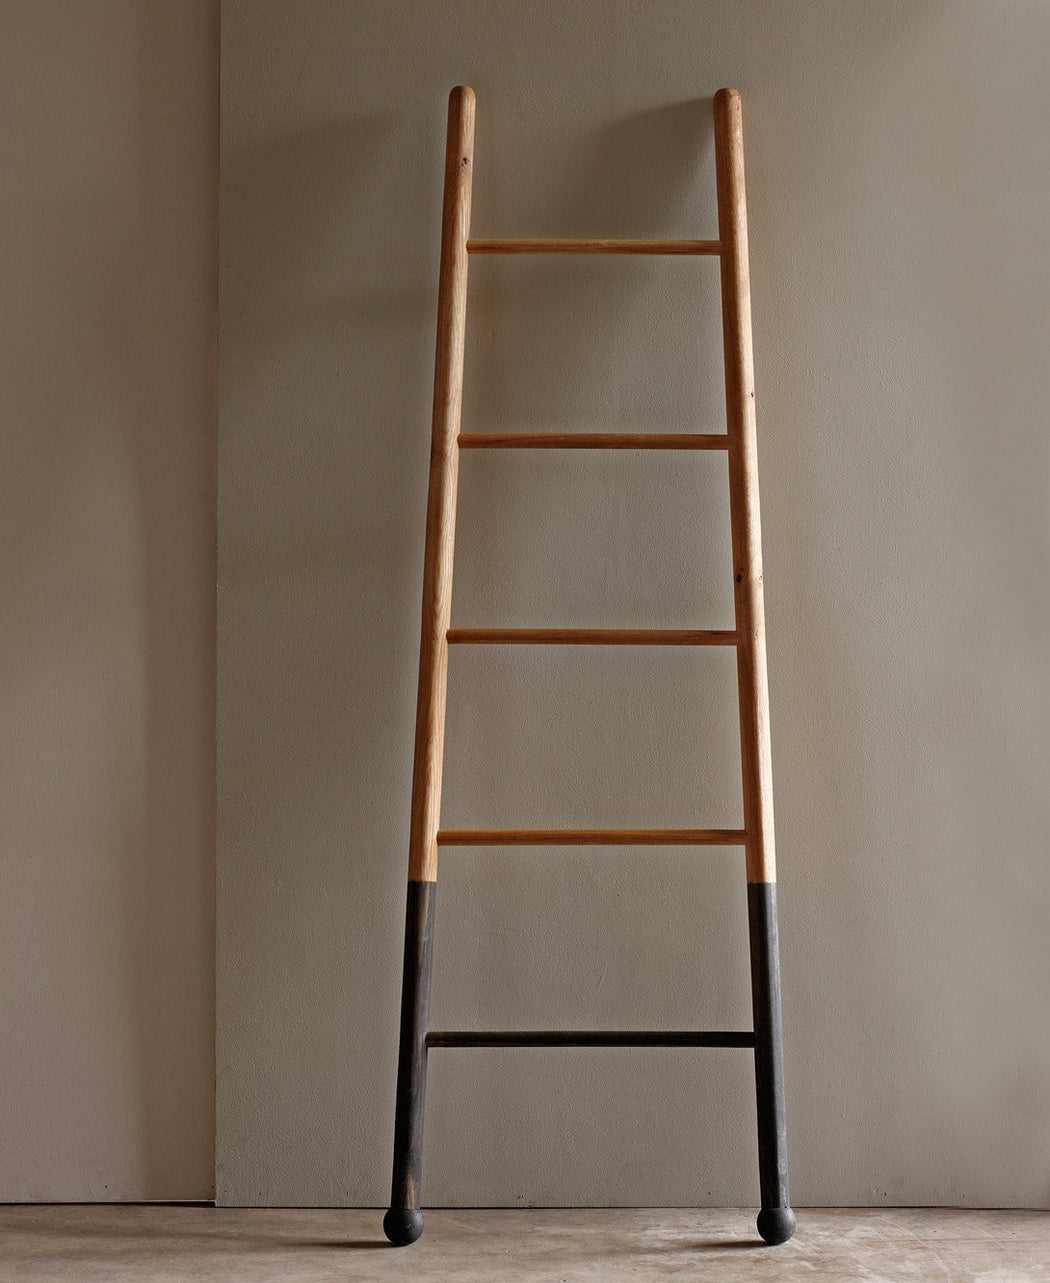 Bloak Ladders - Shelving - Lostine